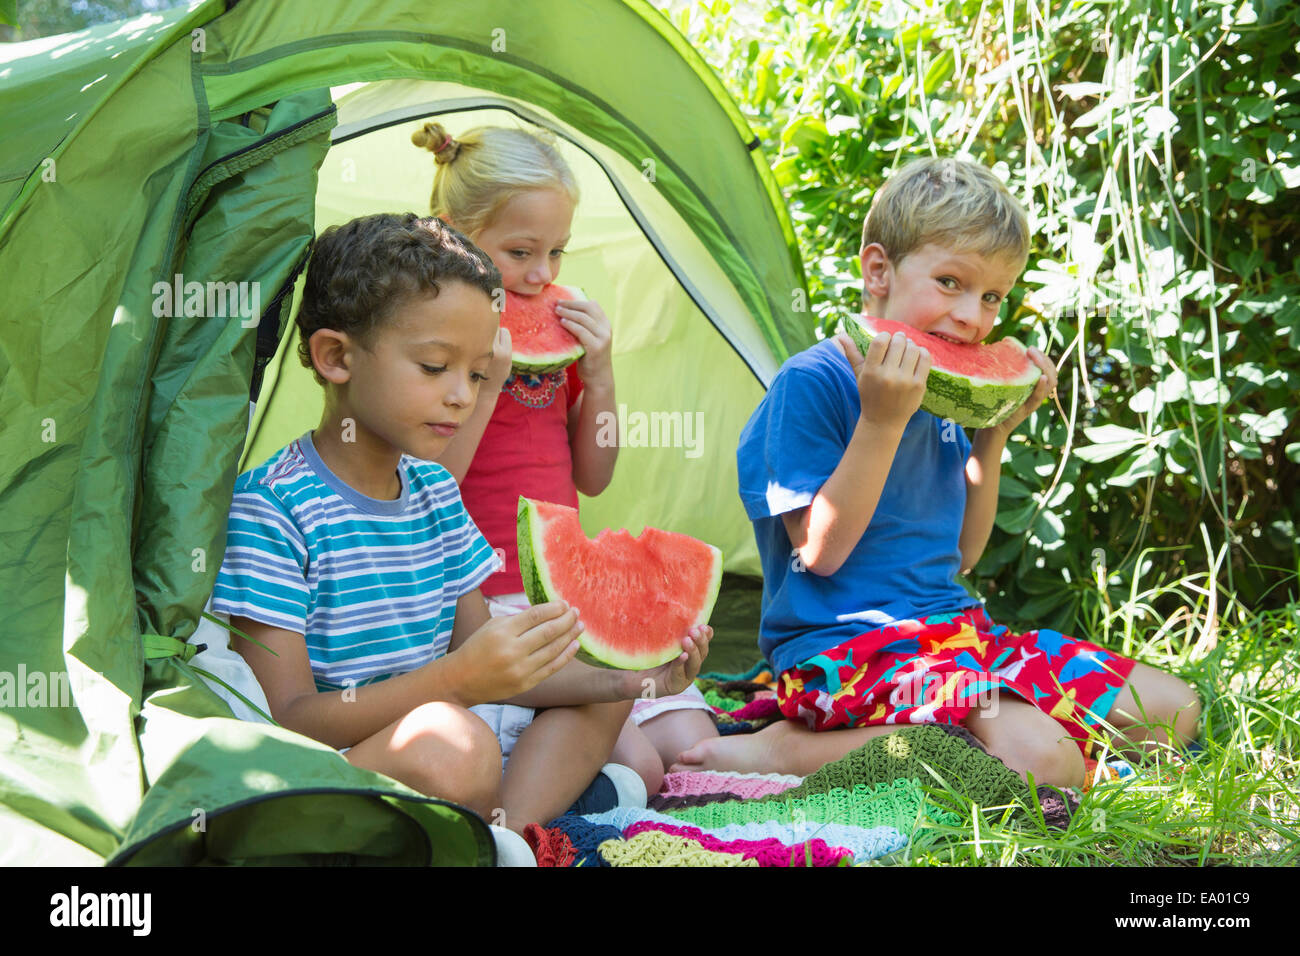 Three children eating watermelon slices in garden tent  sc 1 st  Alamy & Three children eating watermelon slices in garden tent Stock Photo ...